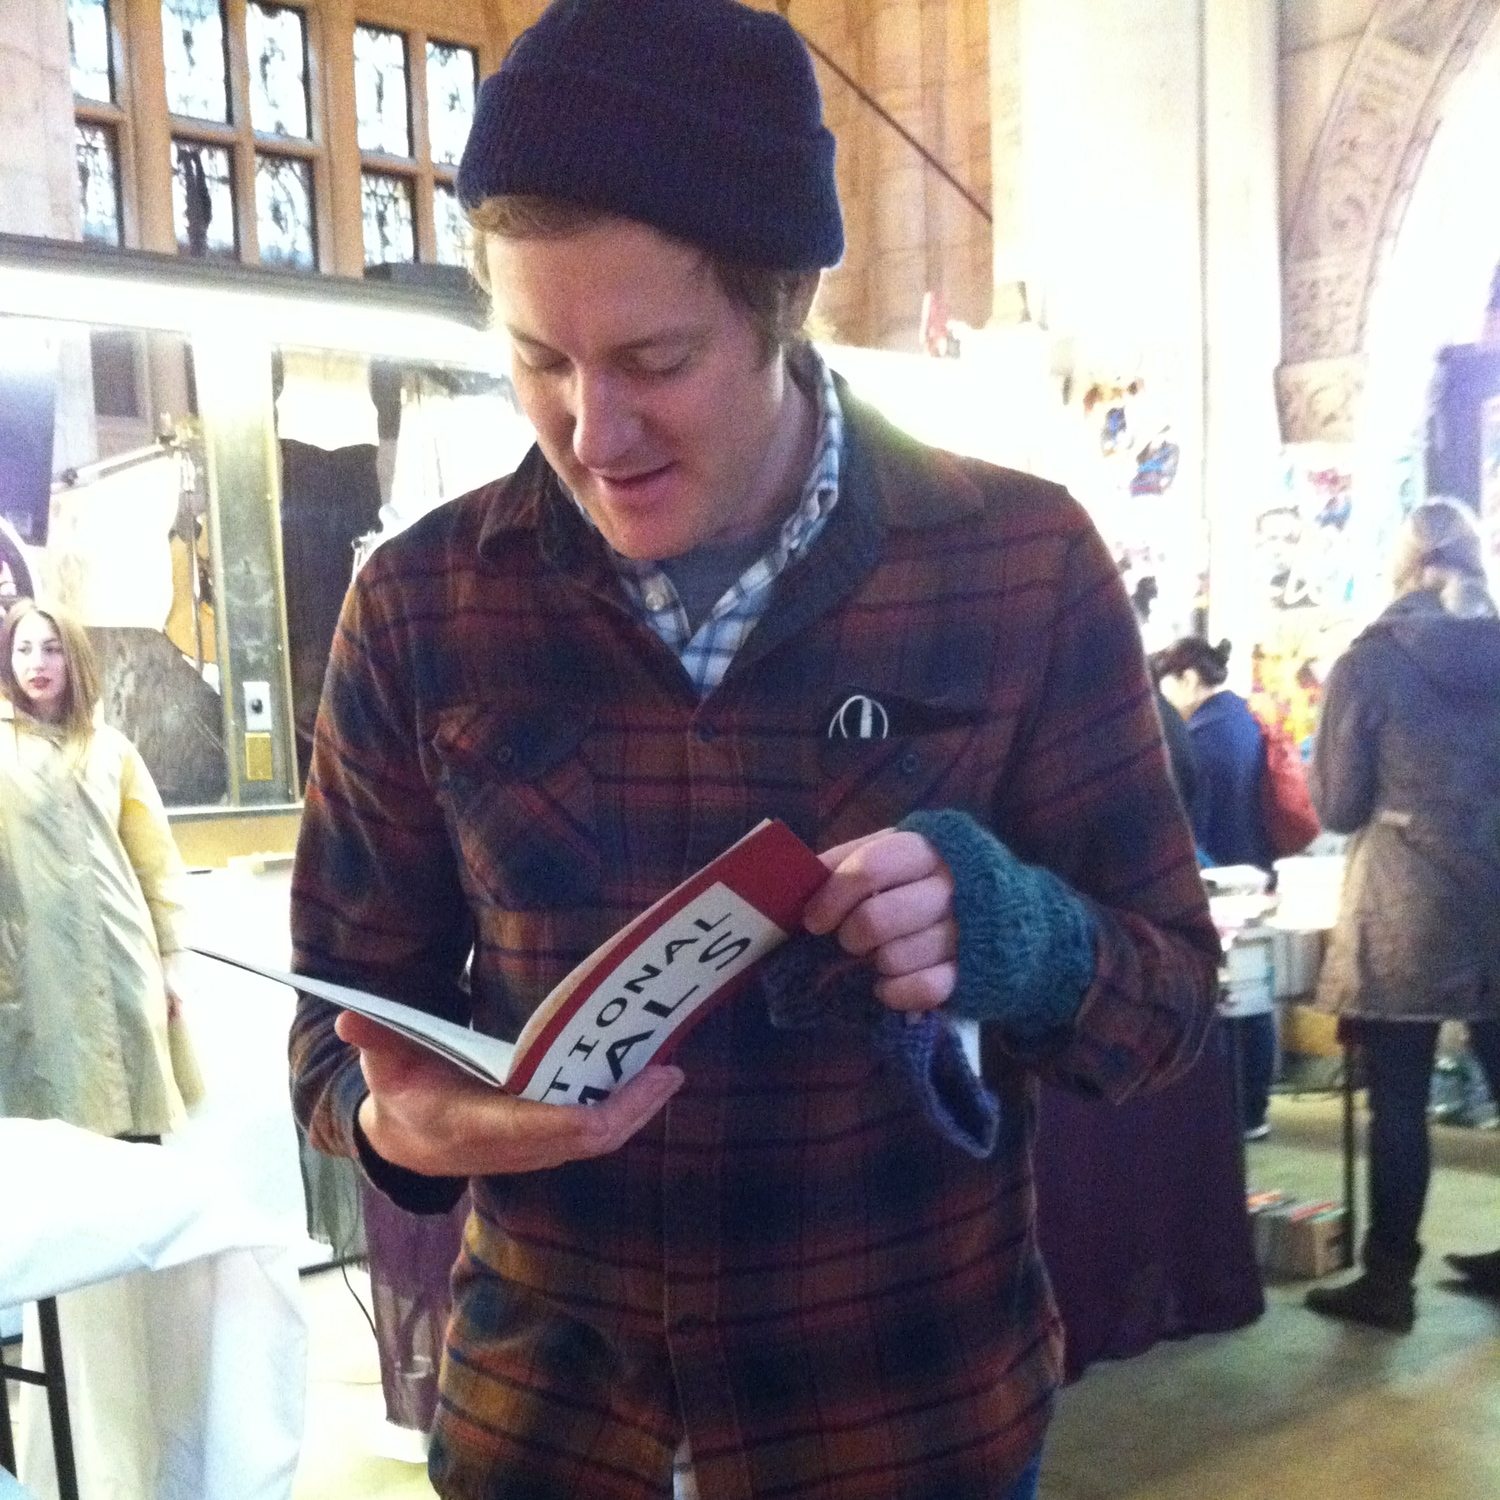 Our very first customer was poet Zachary Schomburg, here perusing (IR)RATIONAL ANIMALS by Steven Karl from Flying Guillotine Press.